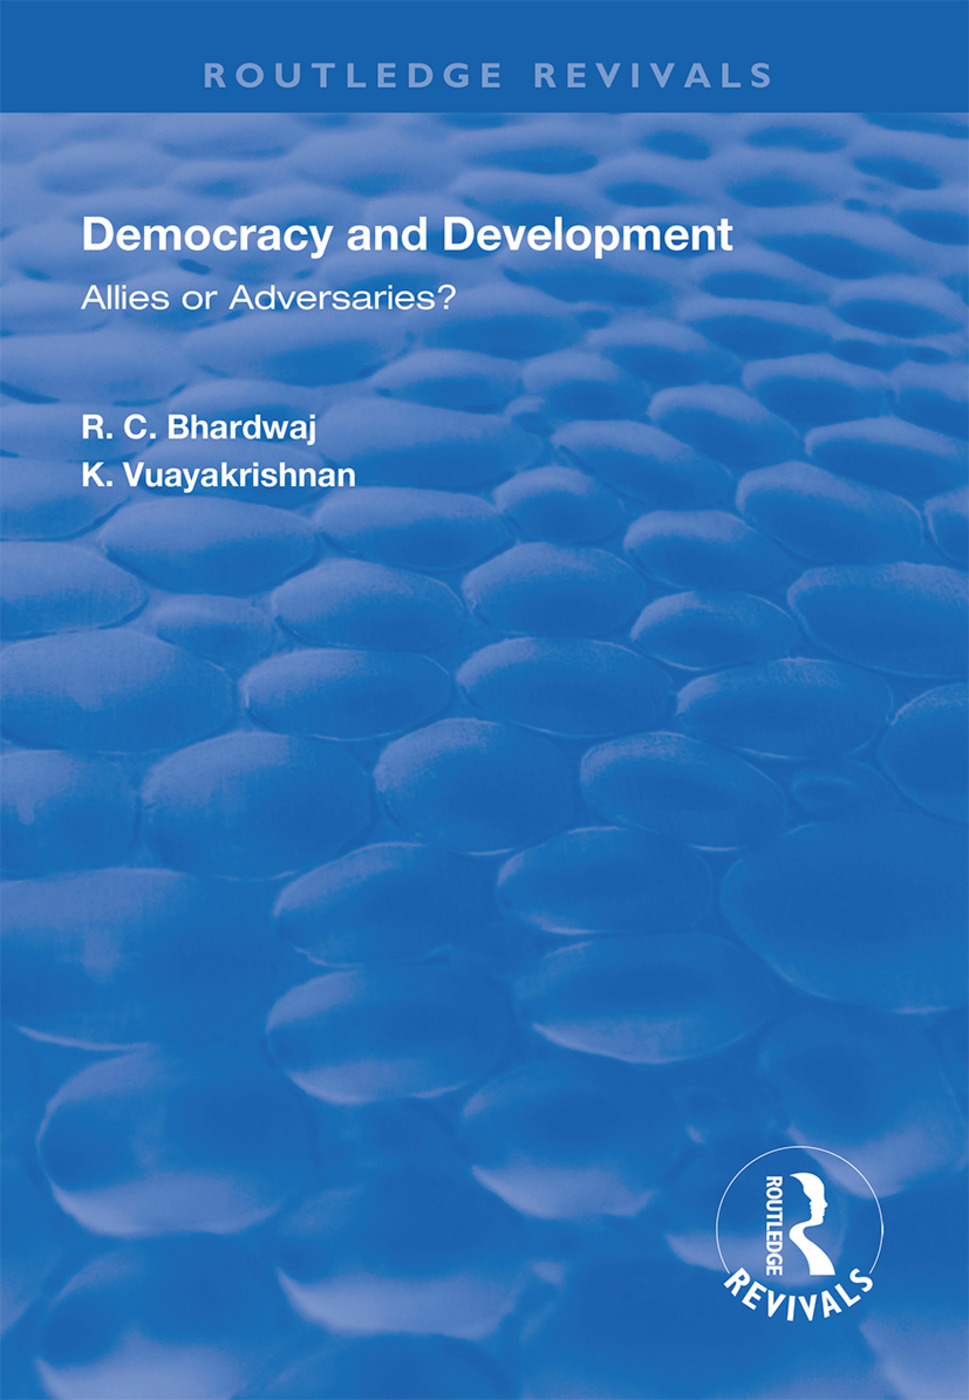 Democracy and Development: Allies or Adversaries? book cover